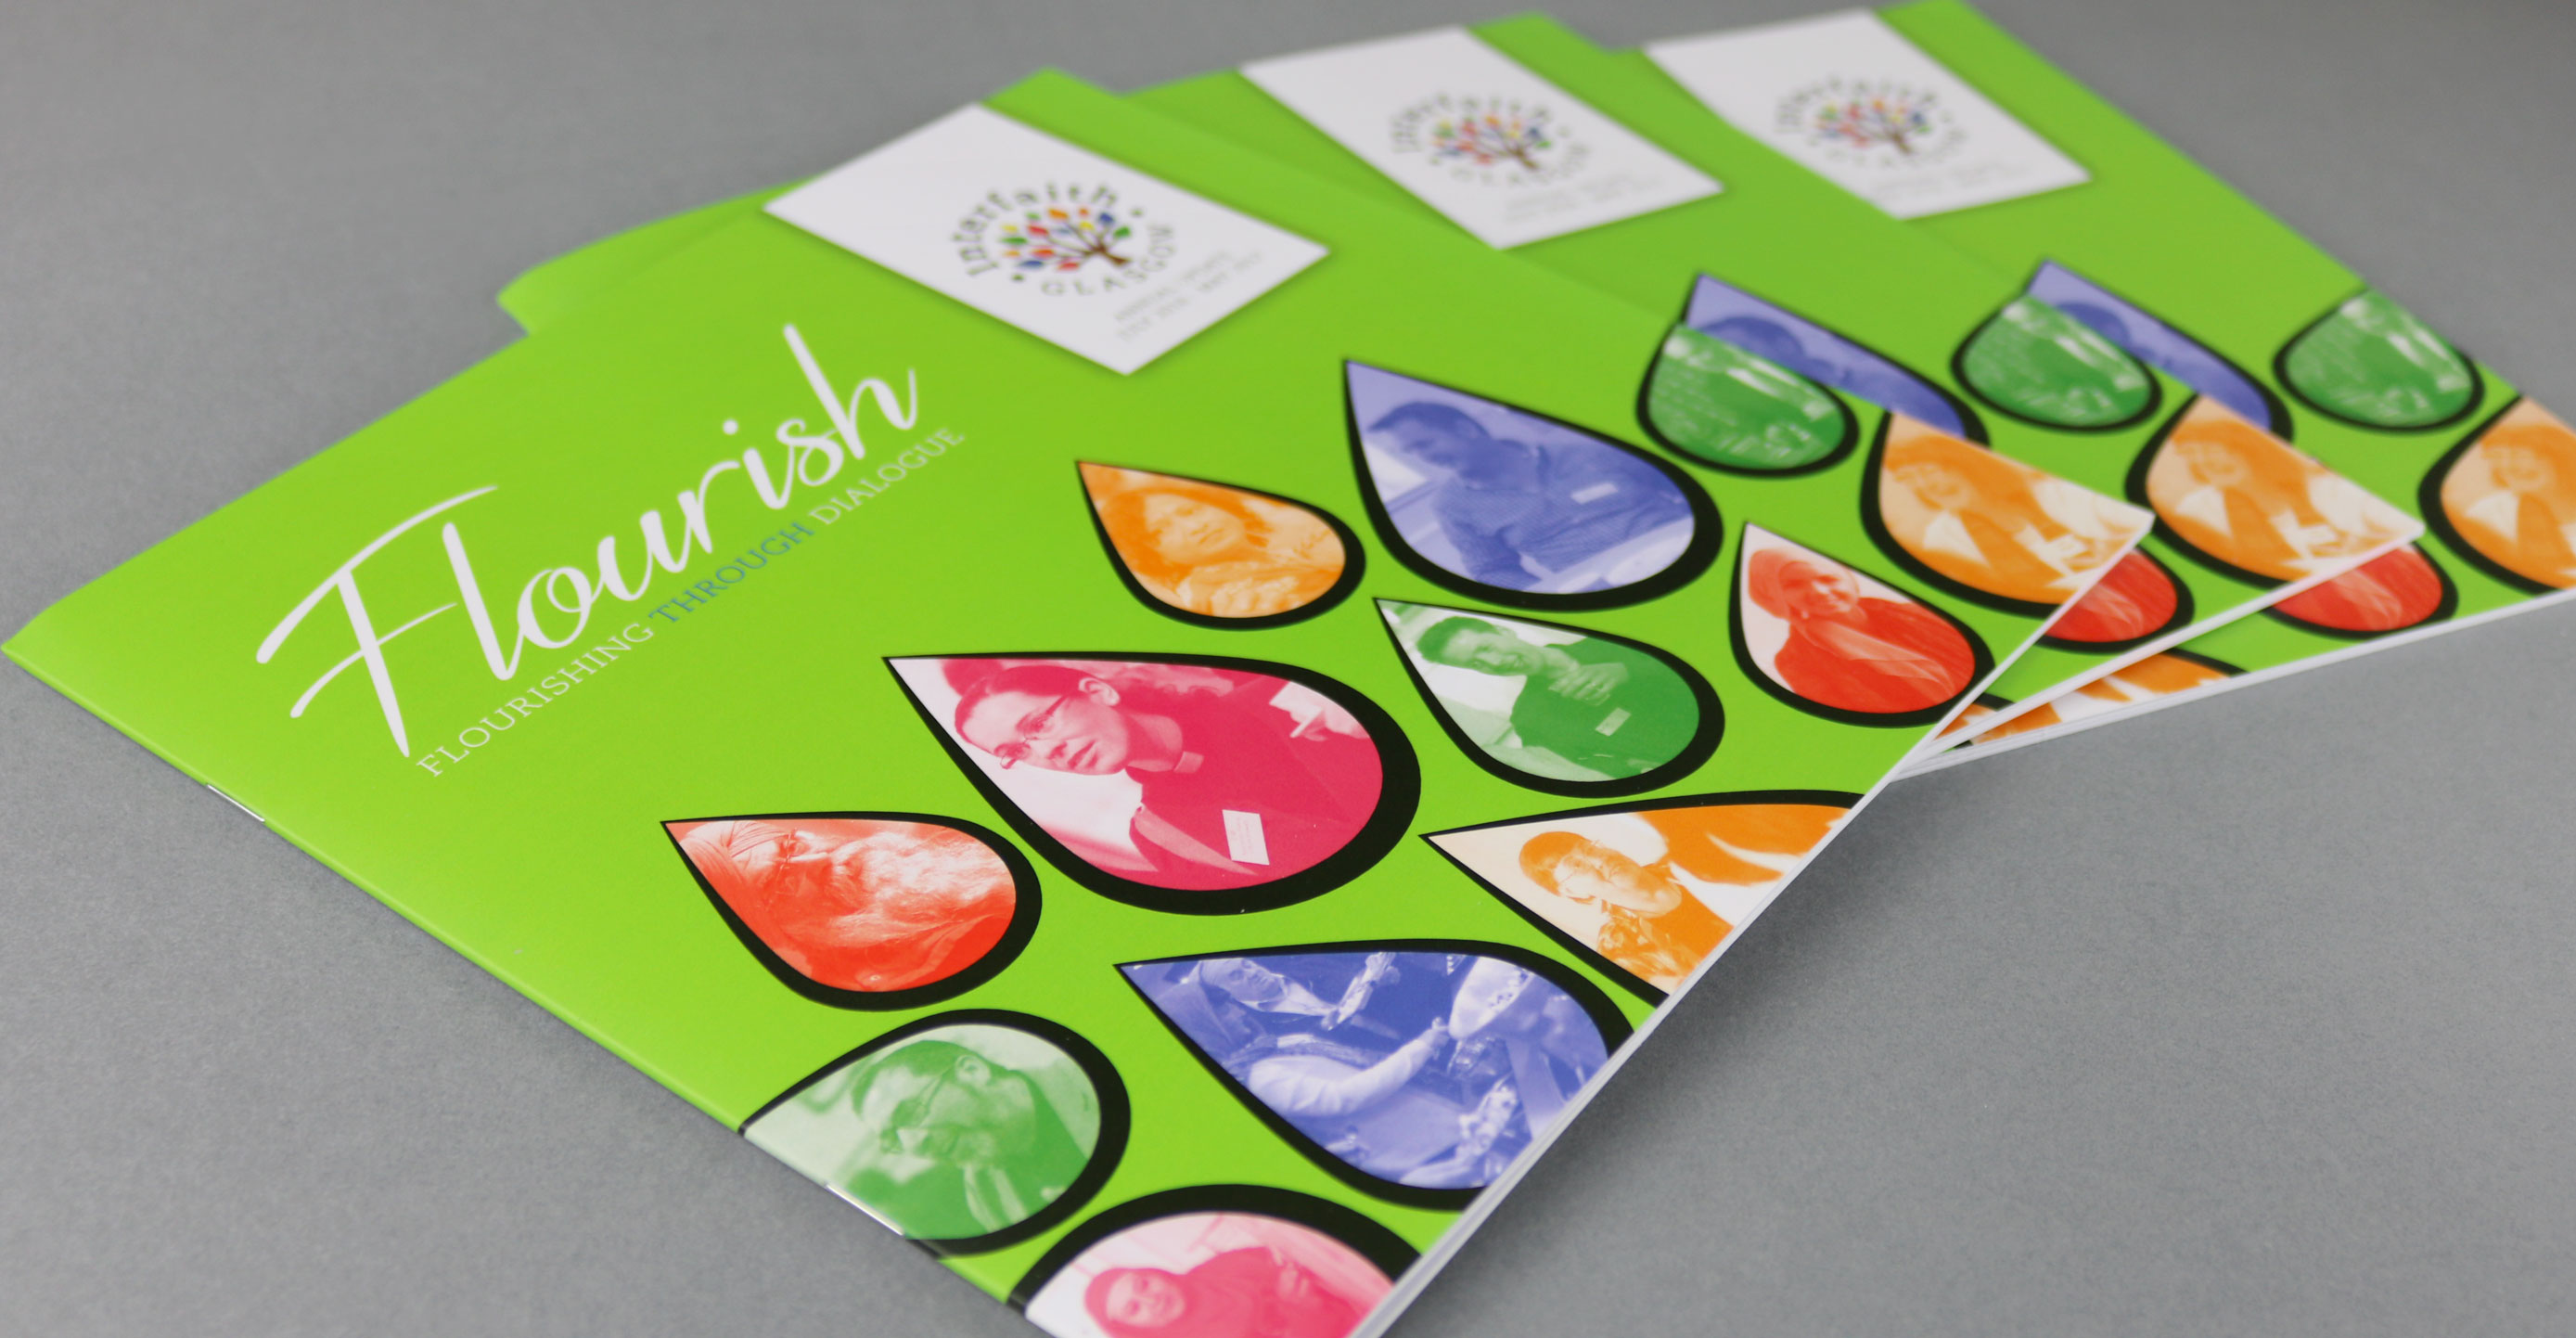 Newsletter design for Glasgow based charity, Interfaith Glasgow.